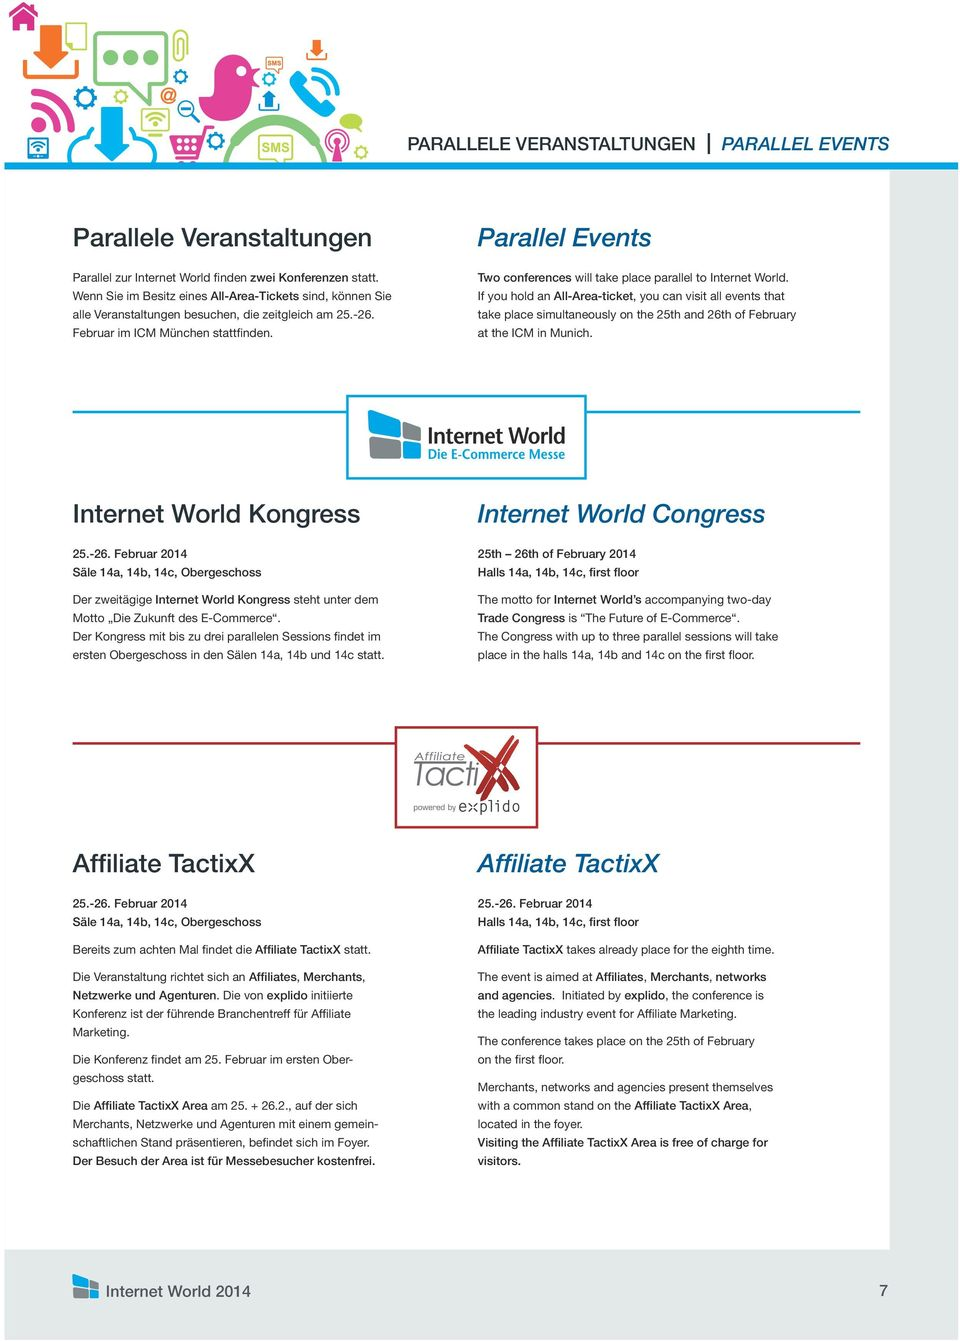 Parallel Events Two conferences will take place parallel to Internet World.